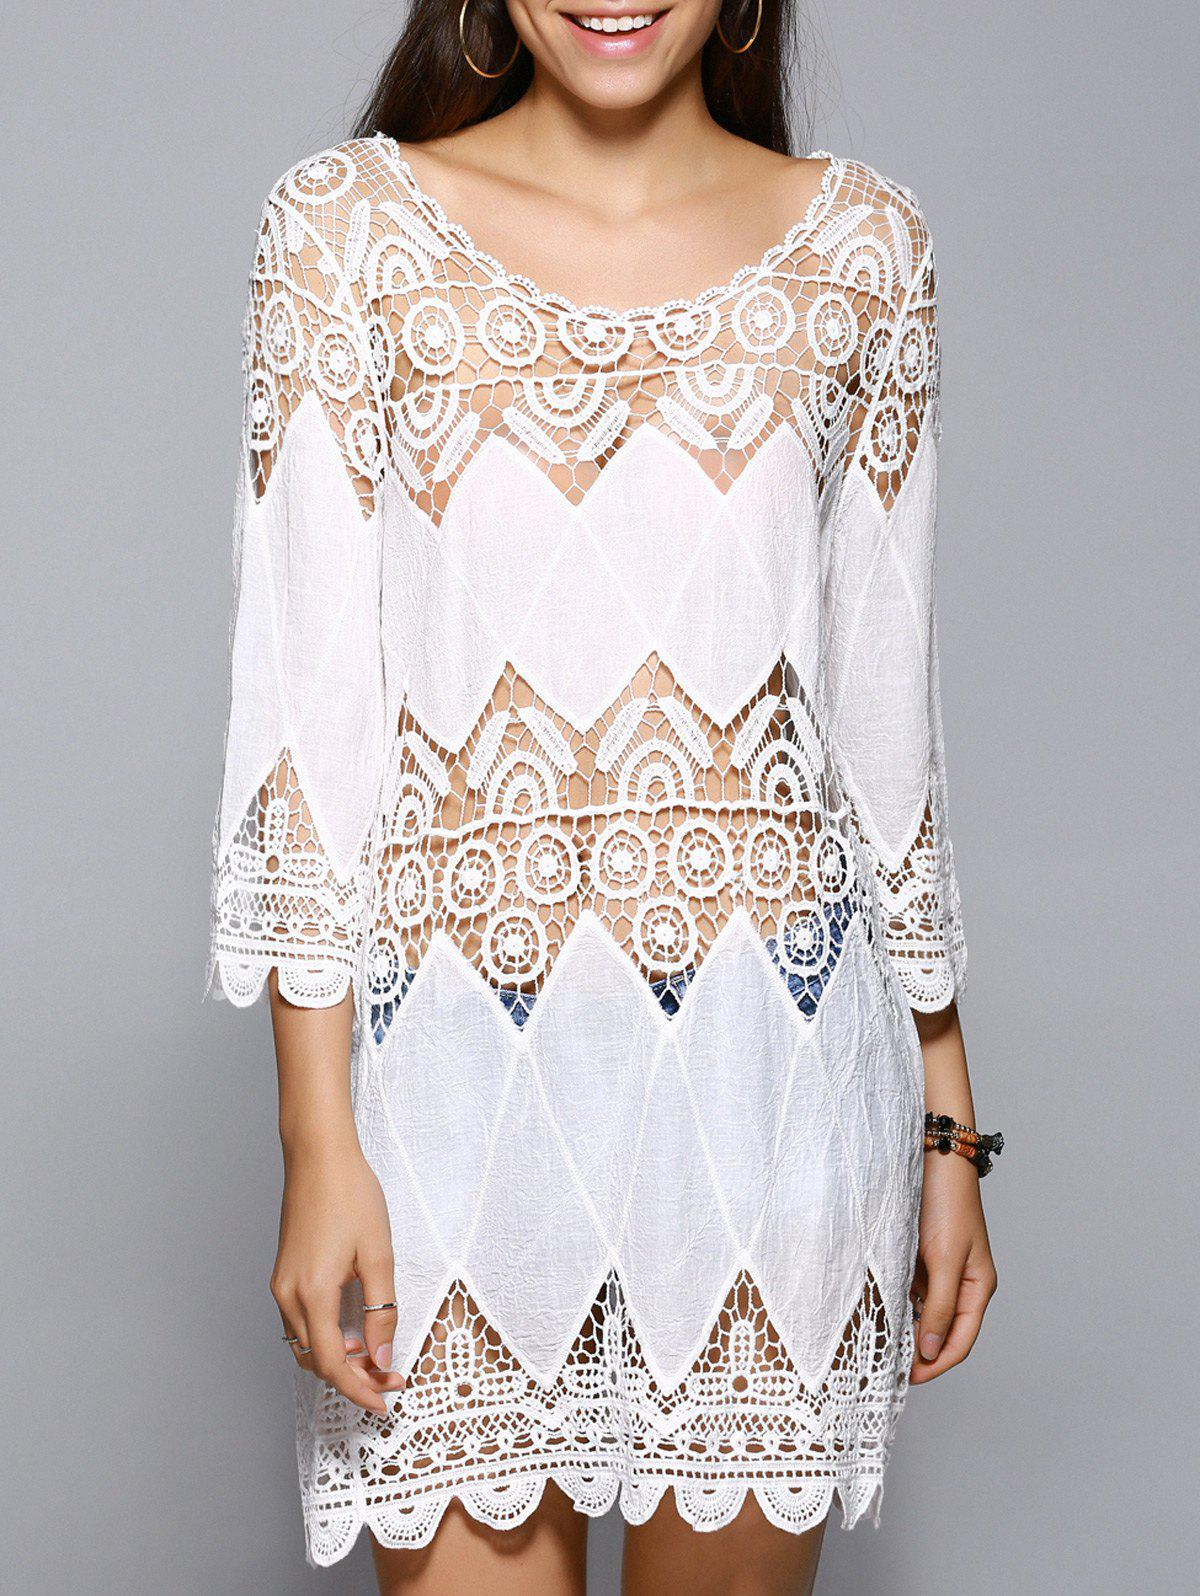 White 3/4 Sleeve Lace Spliced Hollow Out Cover-Up - WHITE L